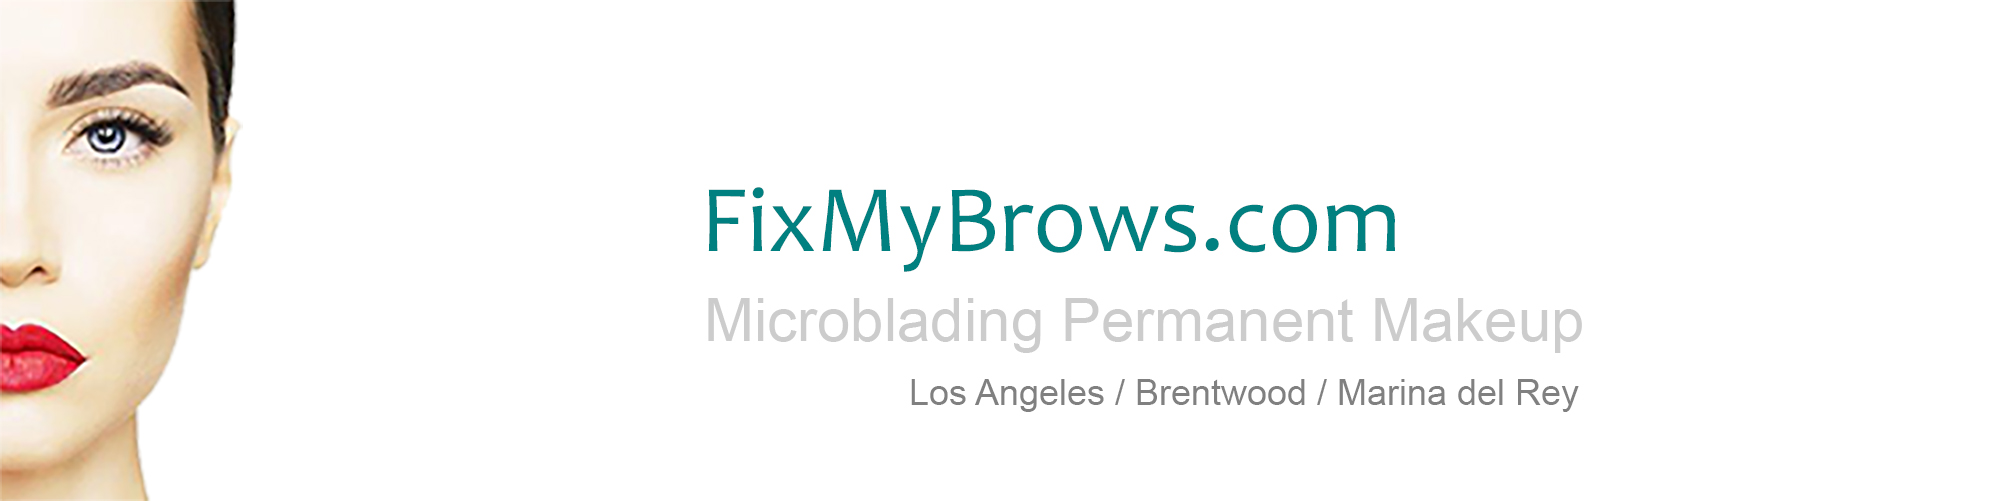 Fix My Brows logo